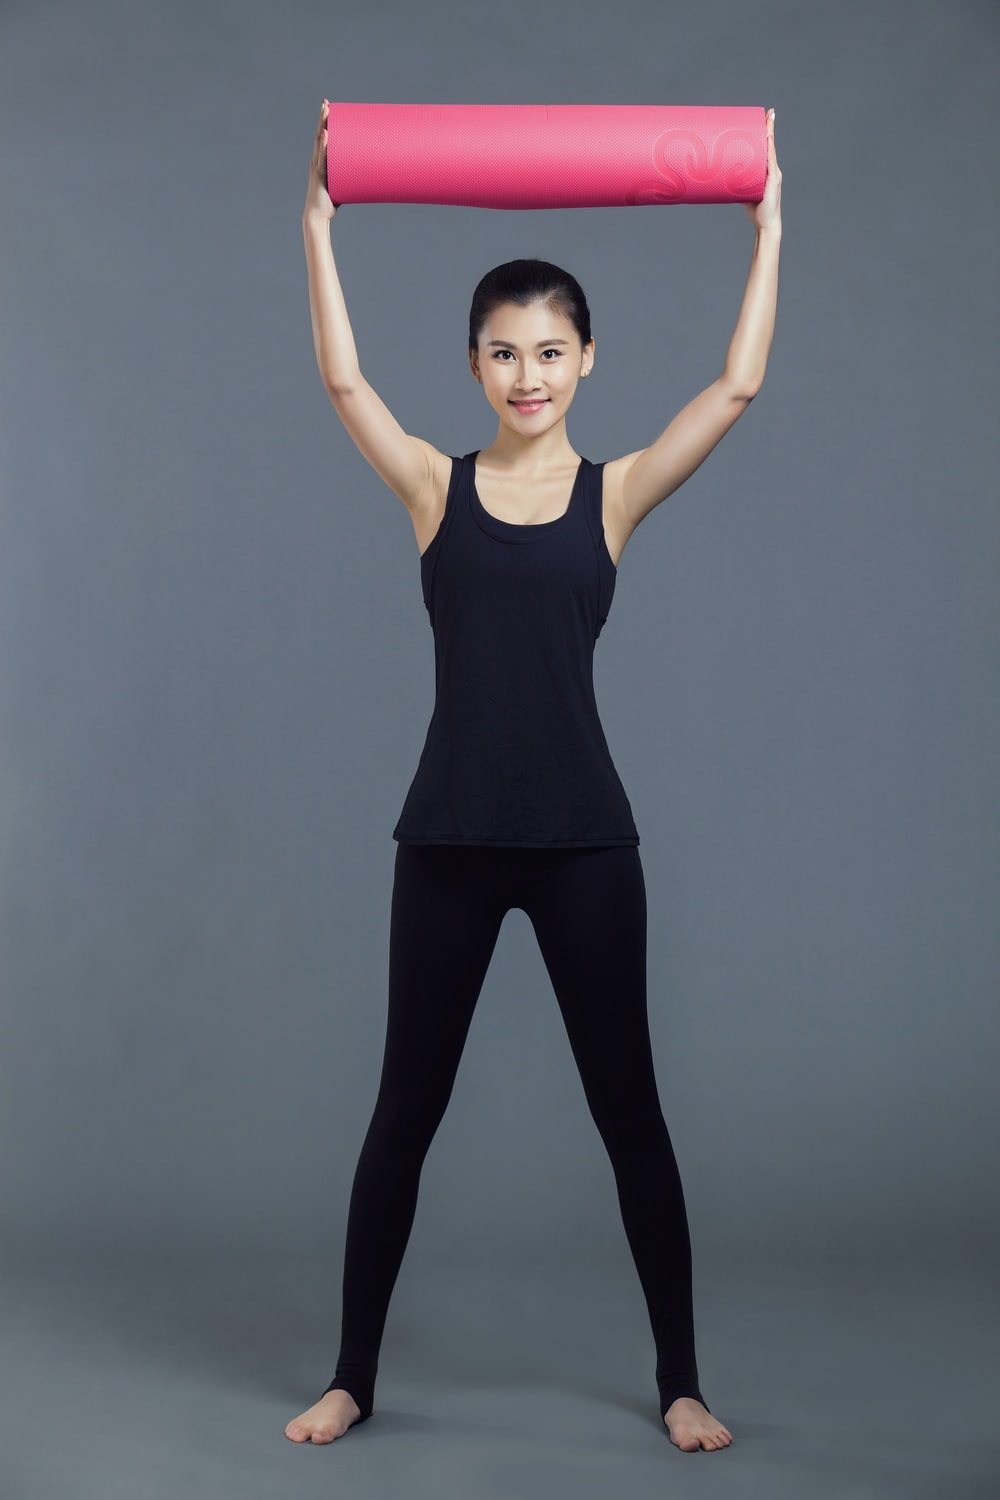 woman in black tank top and blue pants raising her right hand